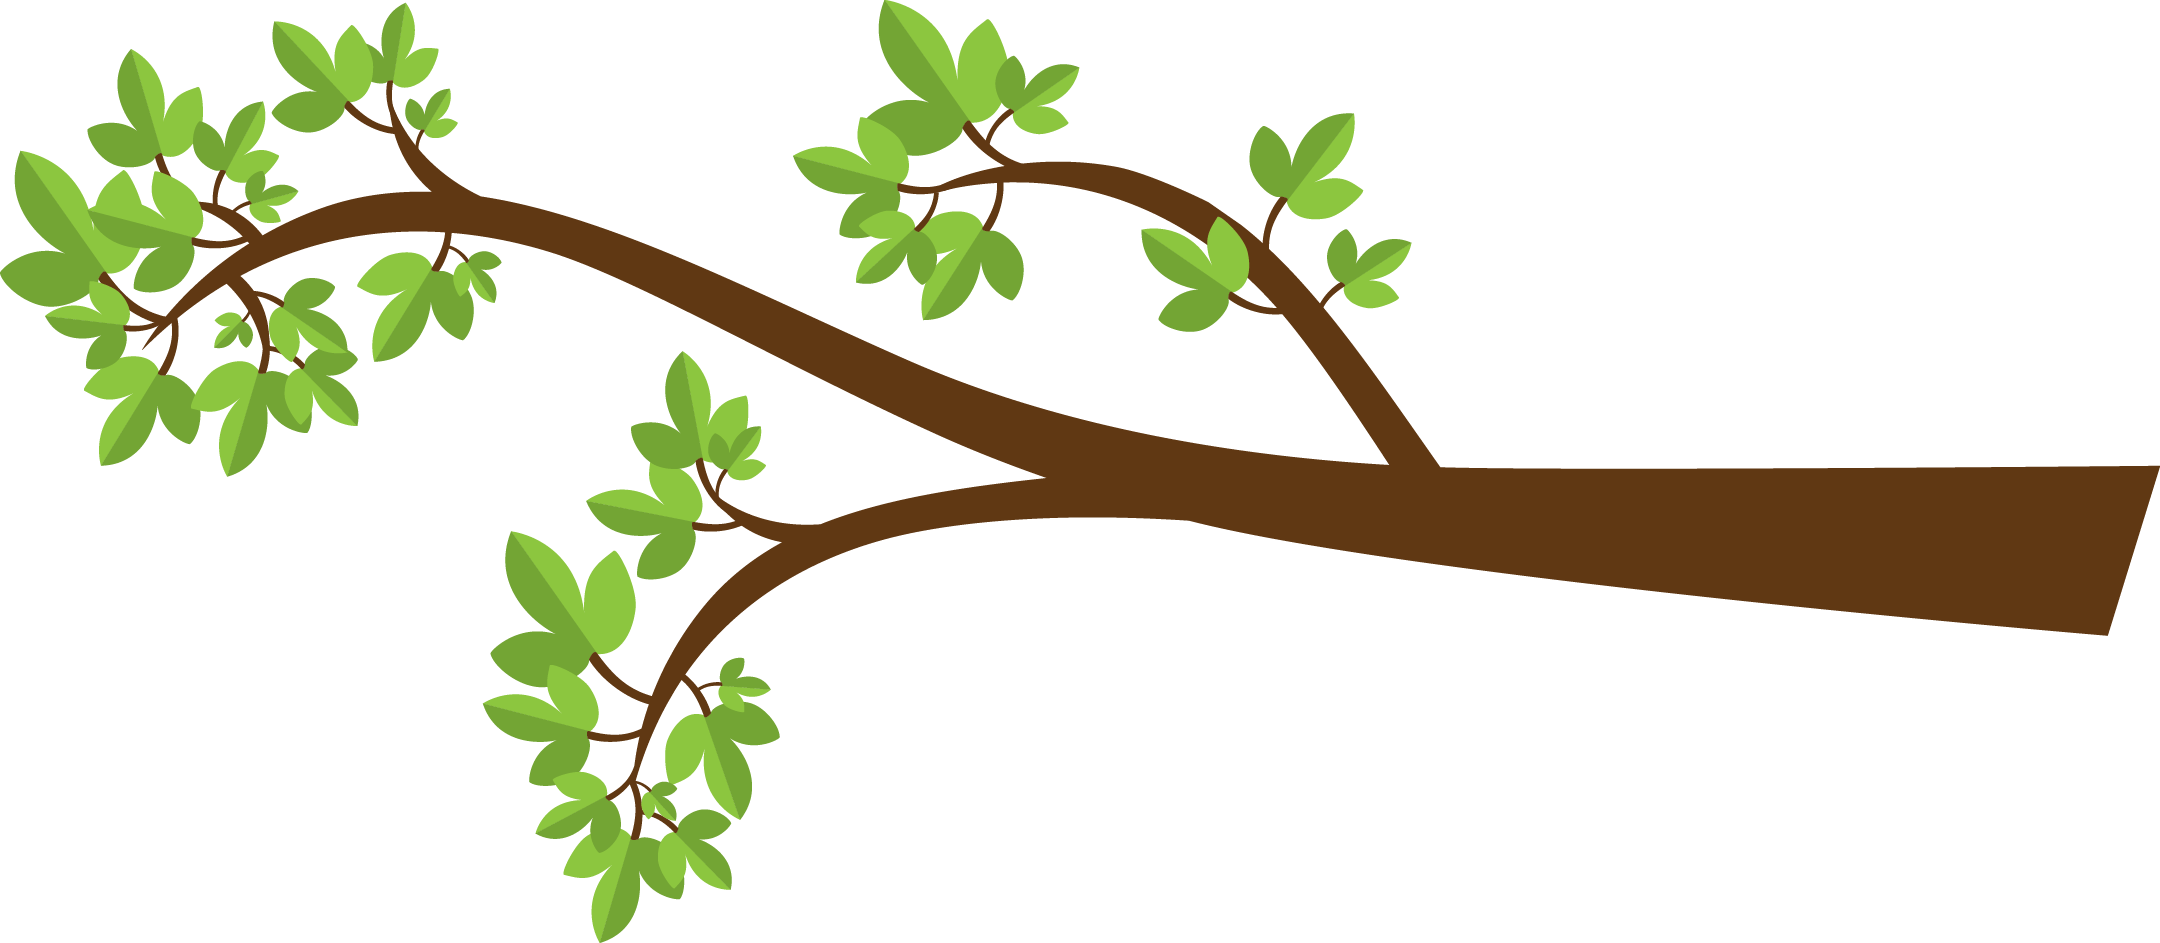 Tree drawing clip art. Branch clipart clipart transparent background